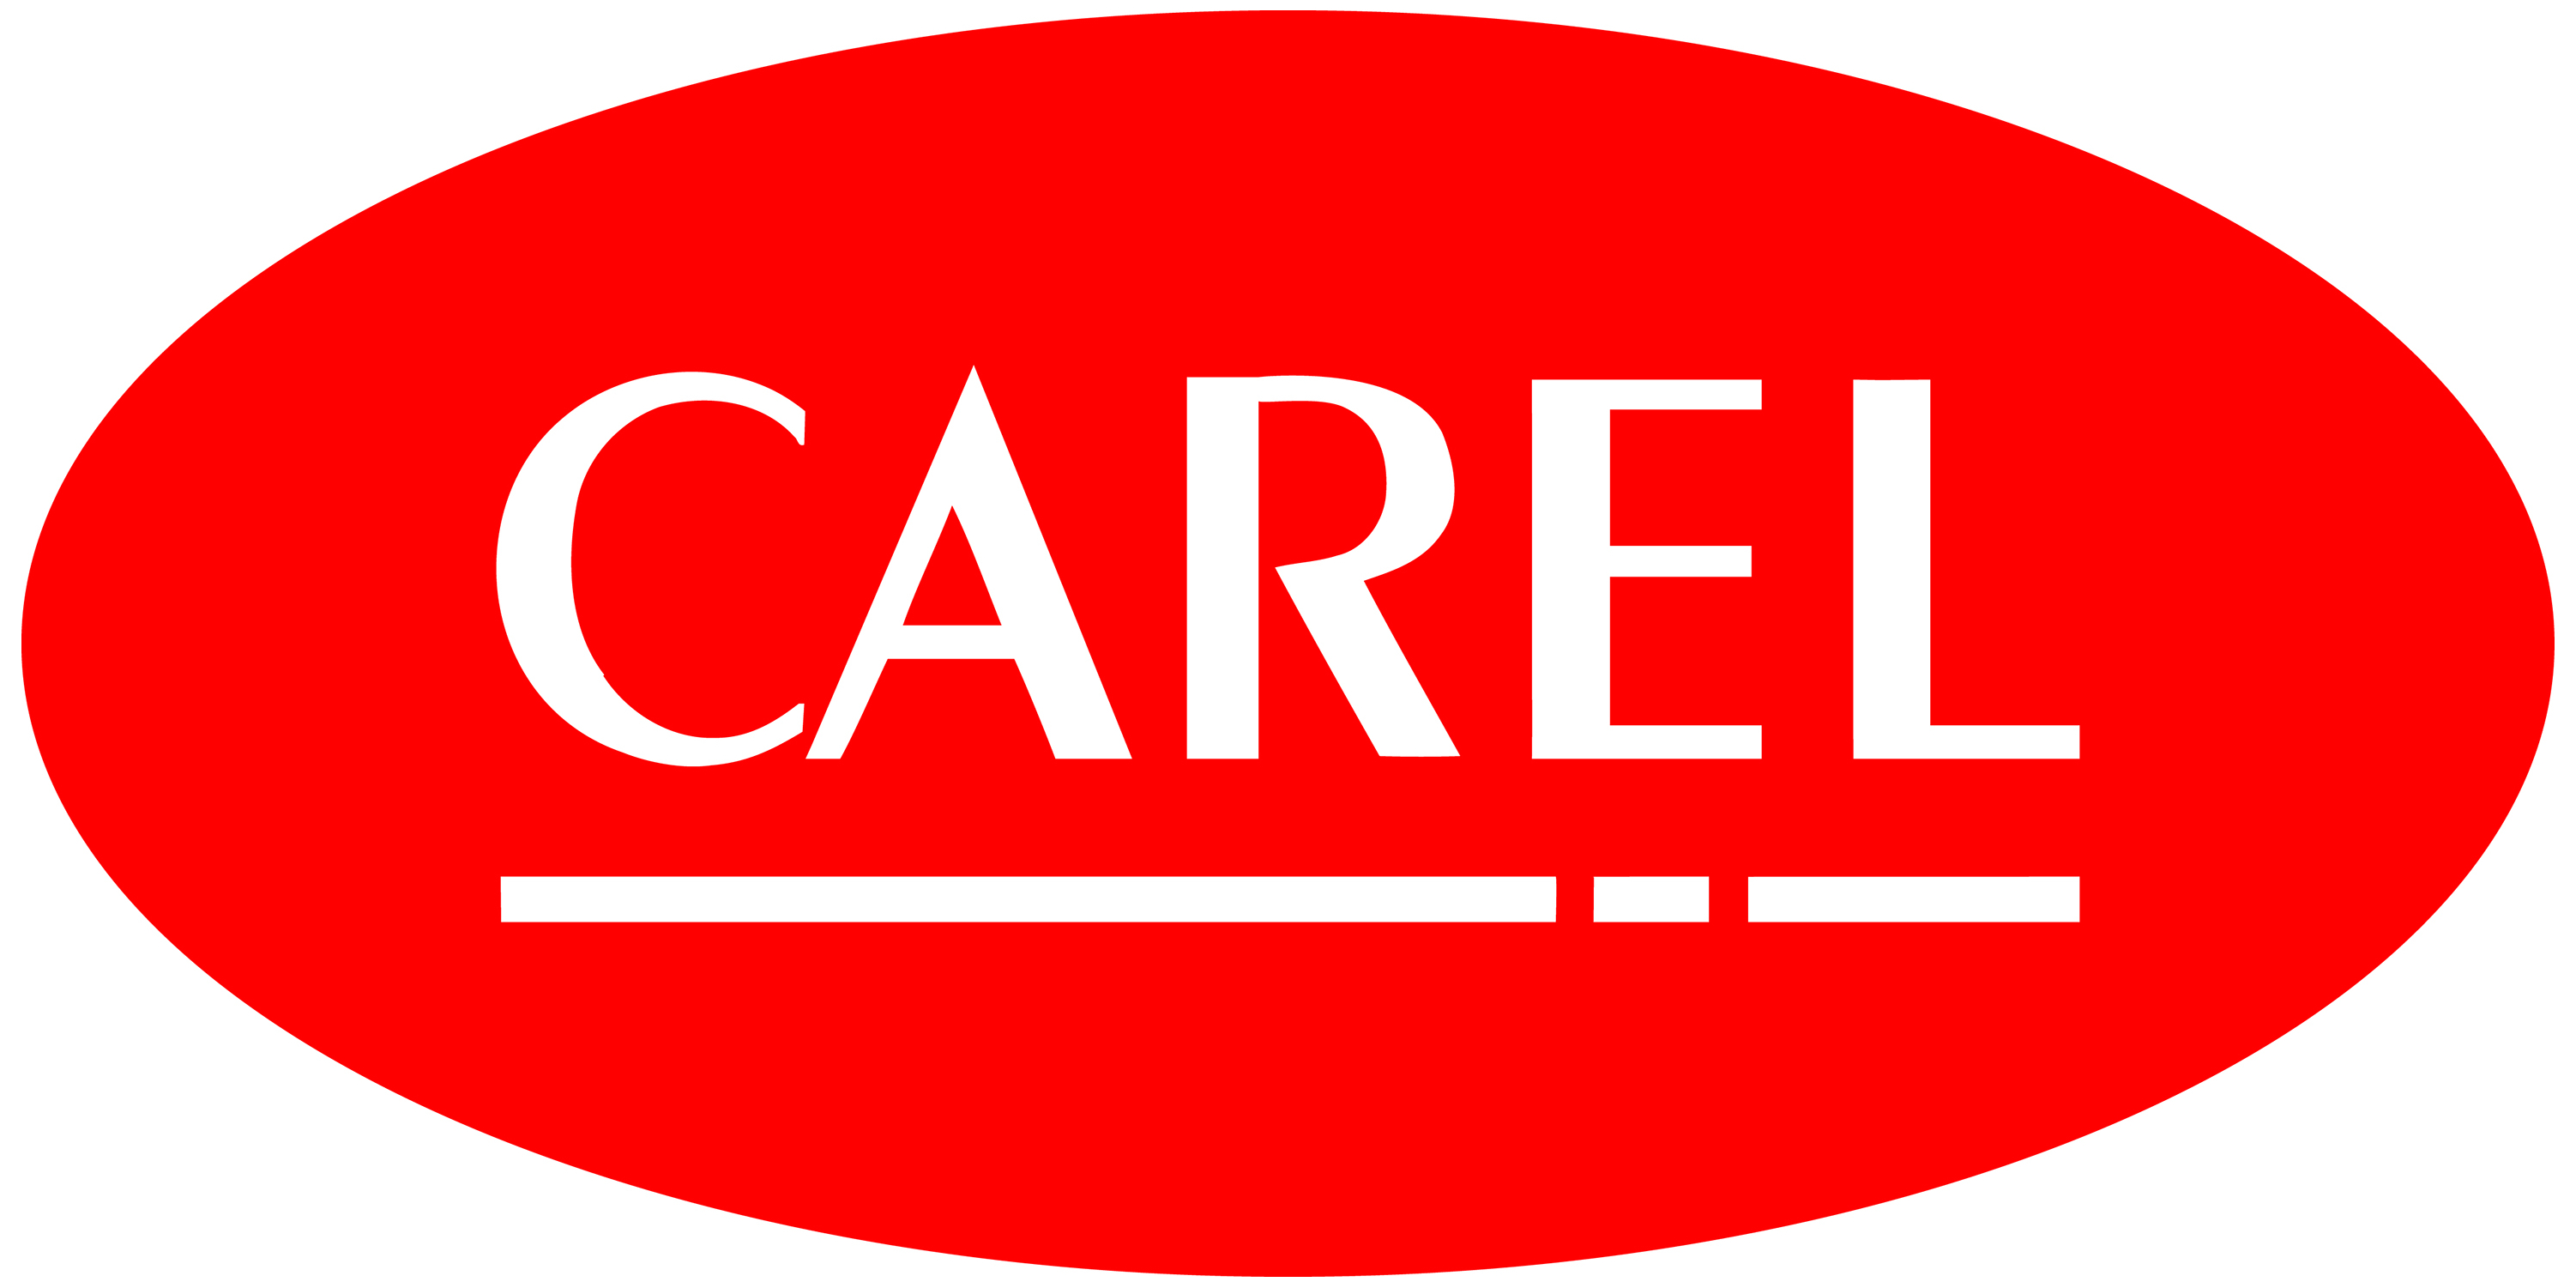 CAREL - Career Days and Events